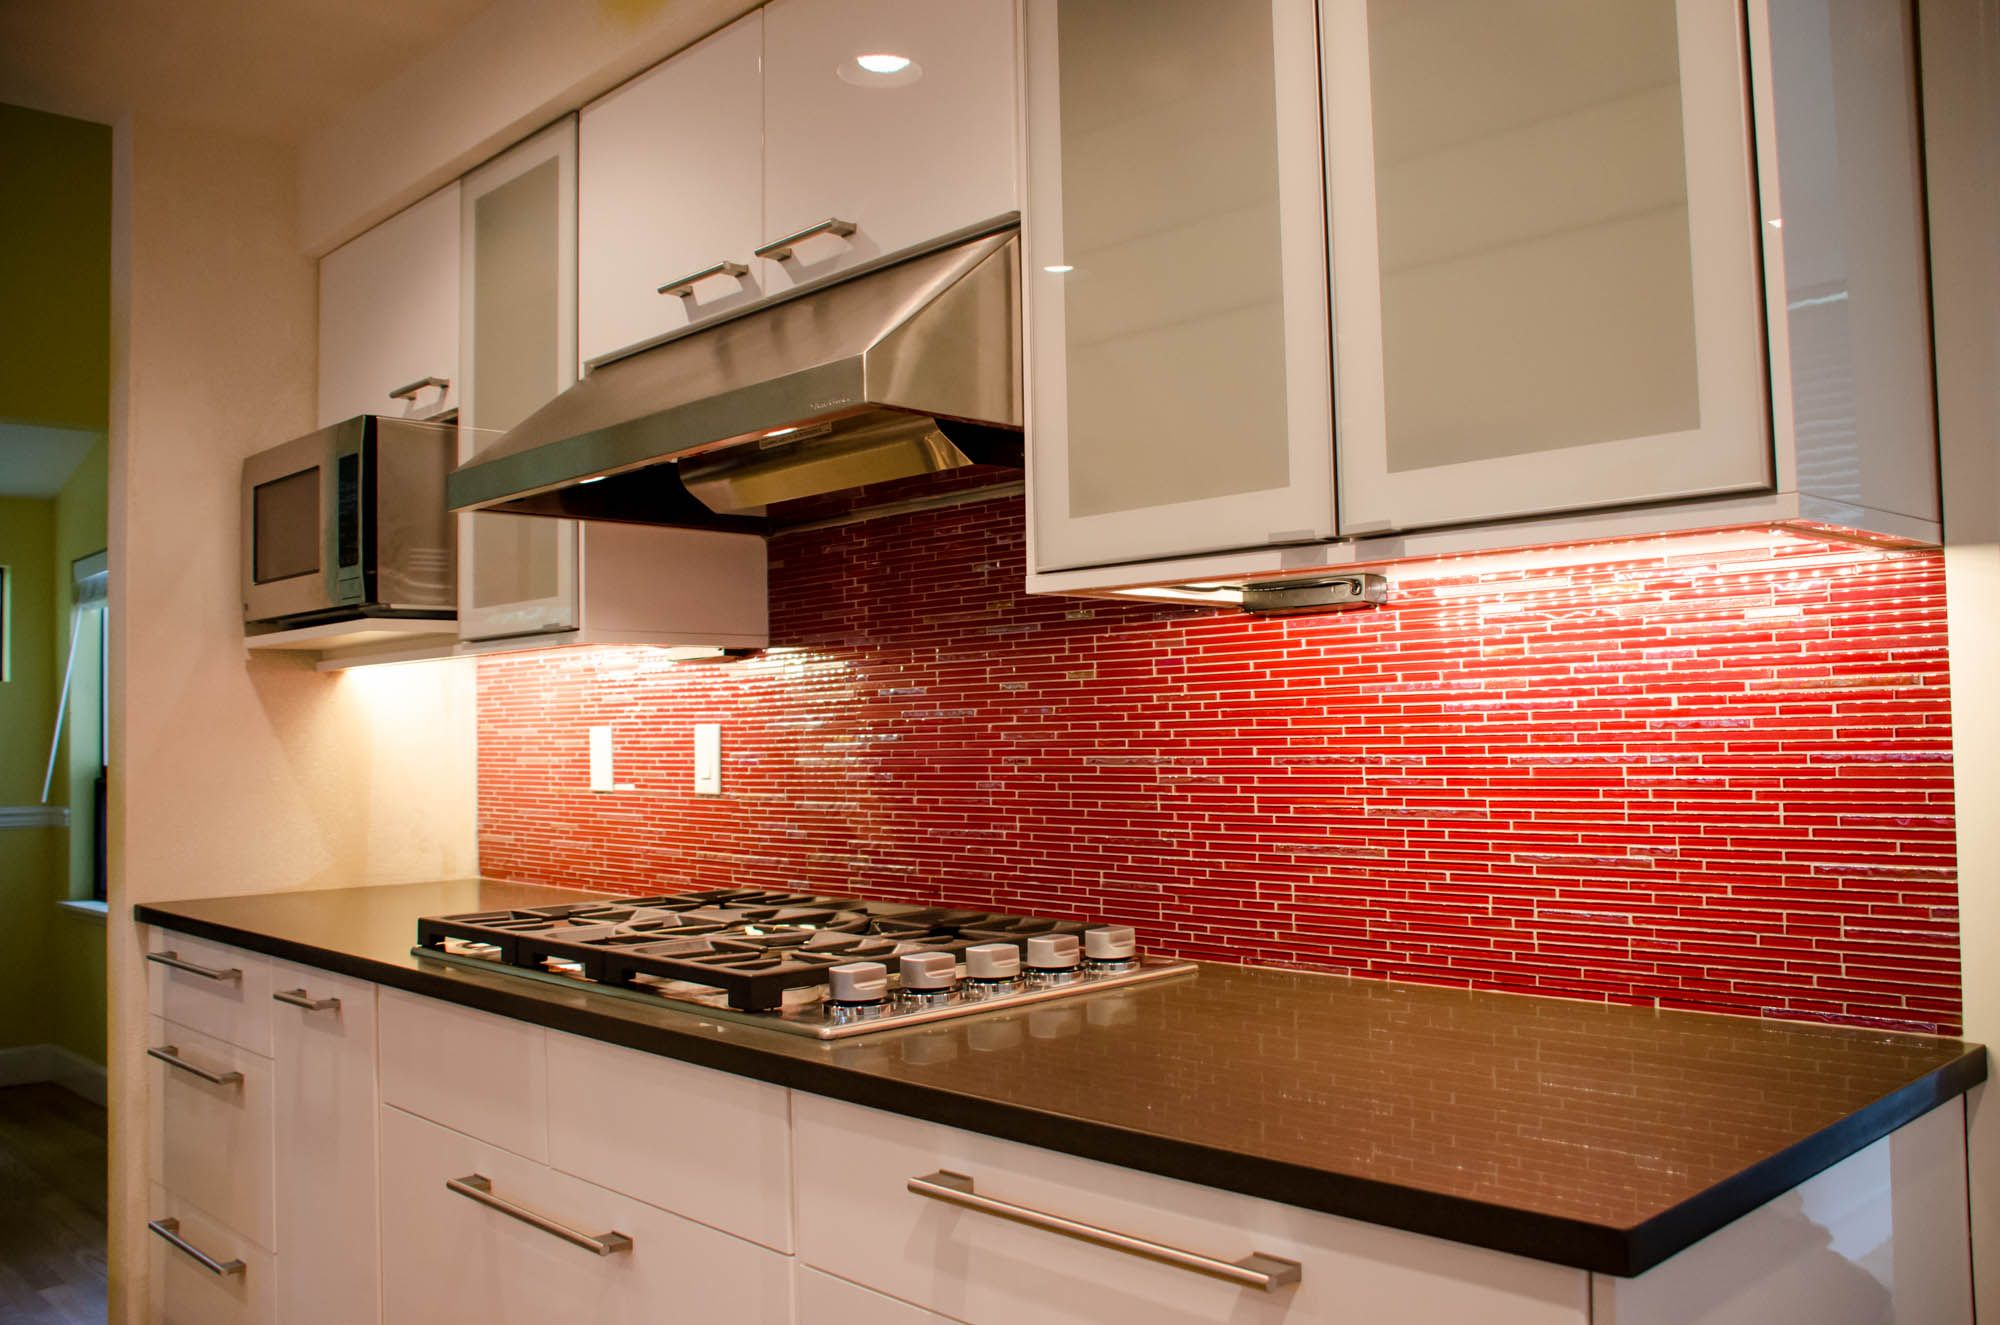 20 Inspiring Kitchen Backsplash Ideas And Pictures Kitchen